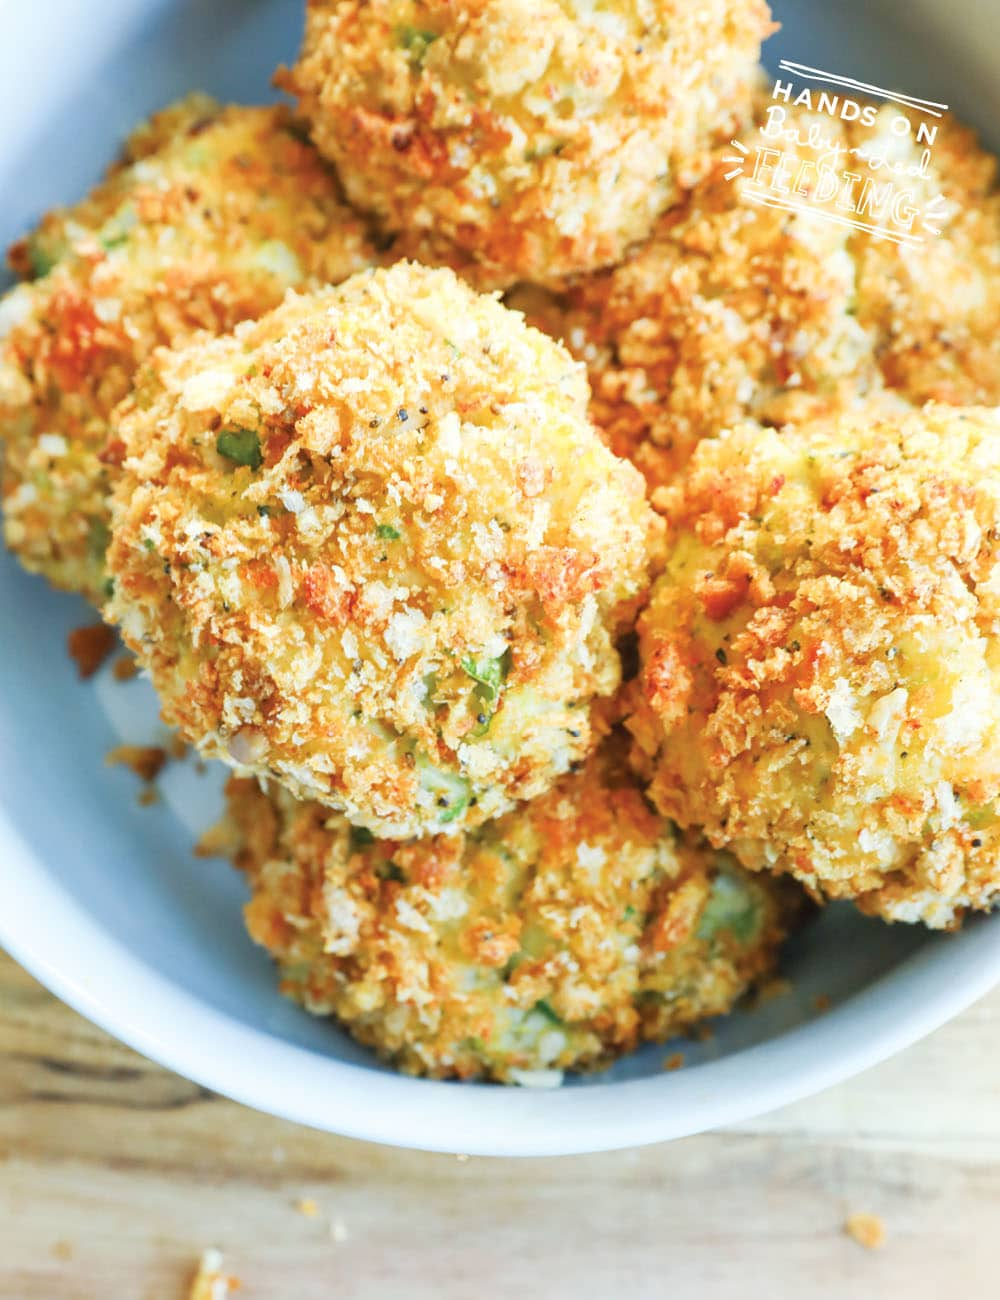 Turkey, Potato, & Veggie Bites are an easy leftover recipe or wholesome appetizer recipe for the holidays. This little finger food recipe is packed with nutrition like vitamin K and uses easy to find ingredients like broccoli, mashed potatoes, and leftover turkey! #leftoverrecipe #holidayrecipe #appetizer #fingerfood #babyledweaning #babyledfeeding #toddler